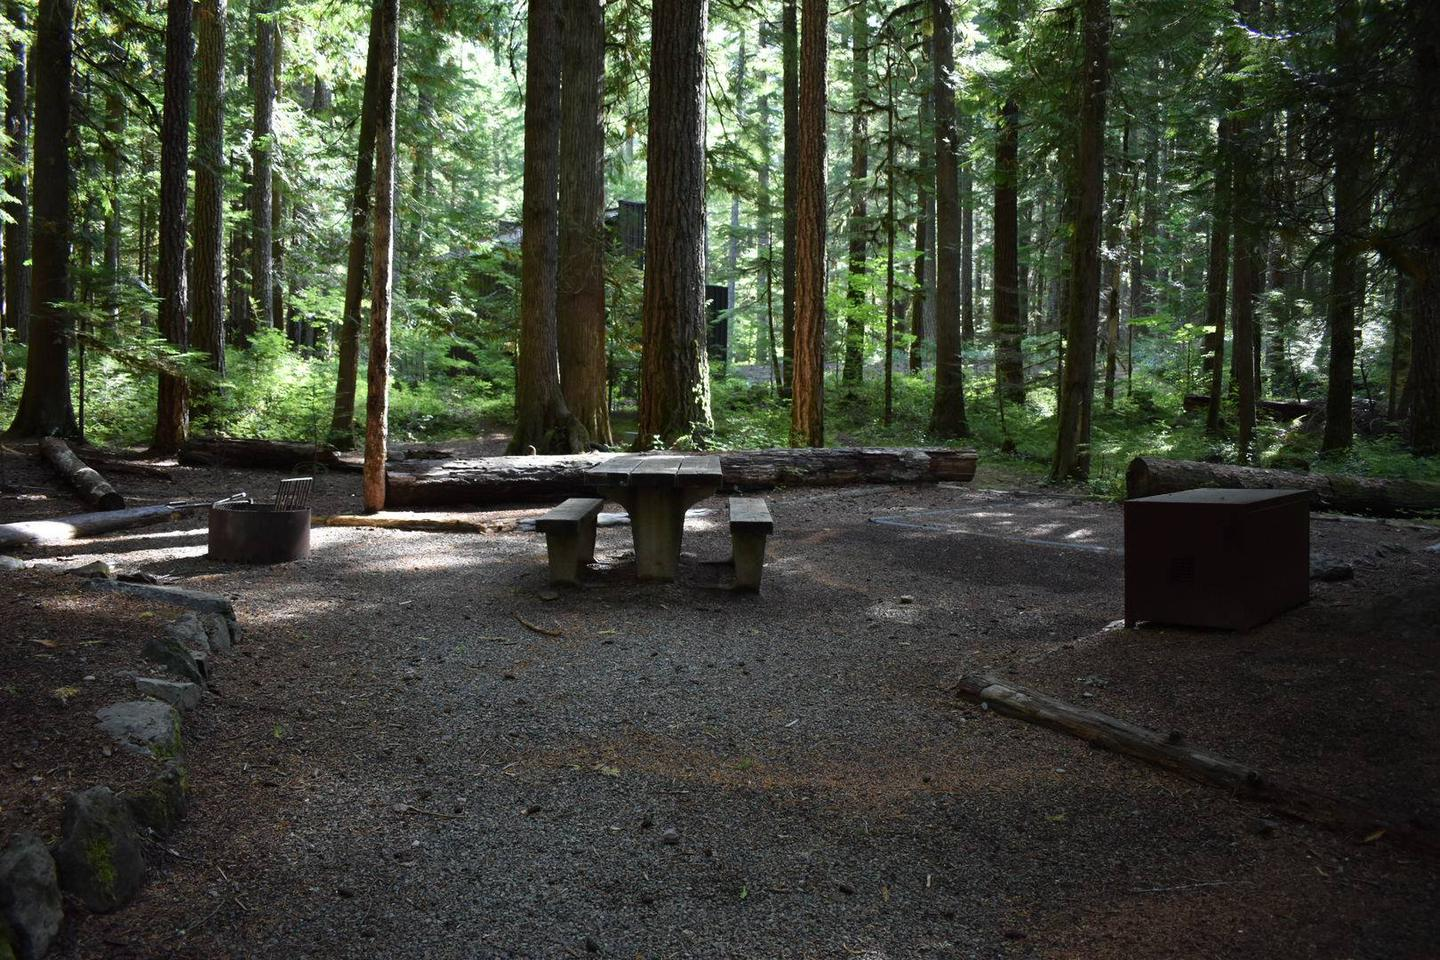 Ohanapecosh Campground - Site D021 AmenitiesCampers are provided with a picnic table, food storage box, and fire pit.